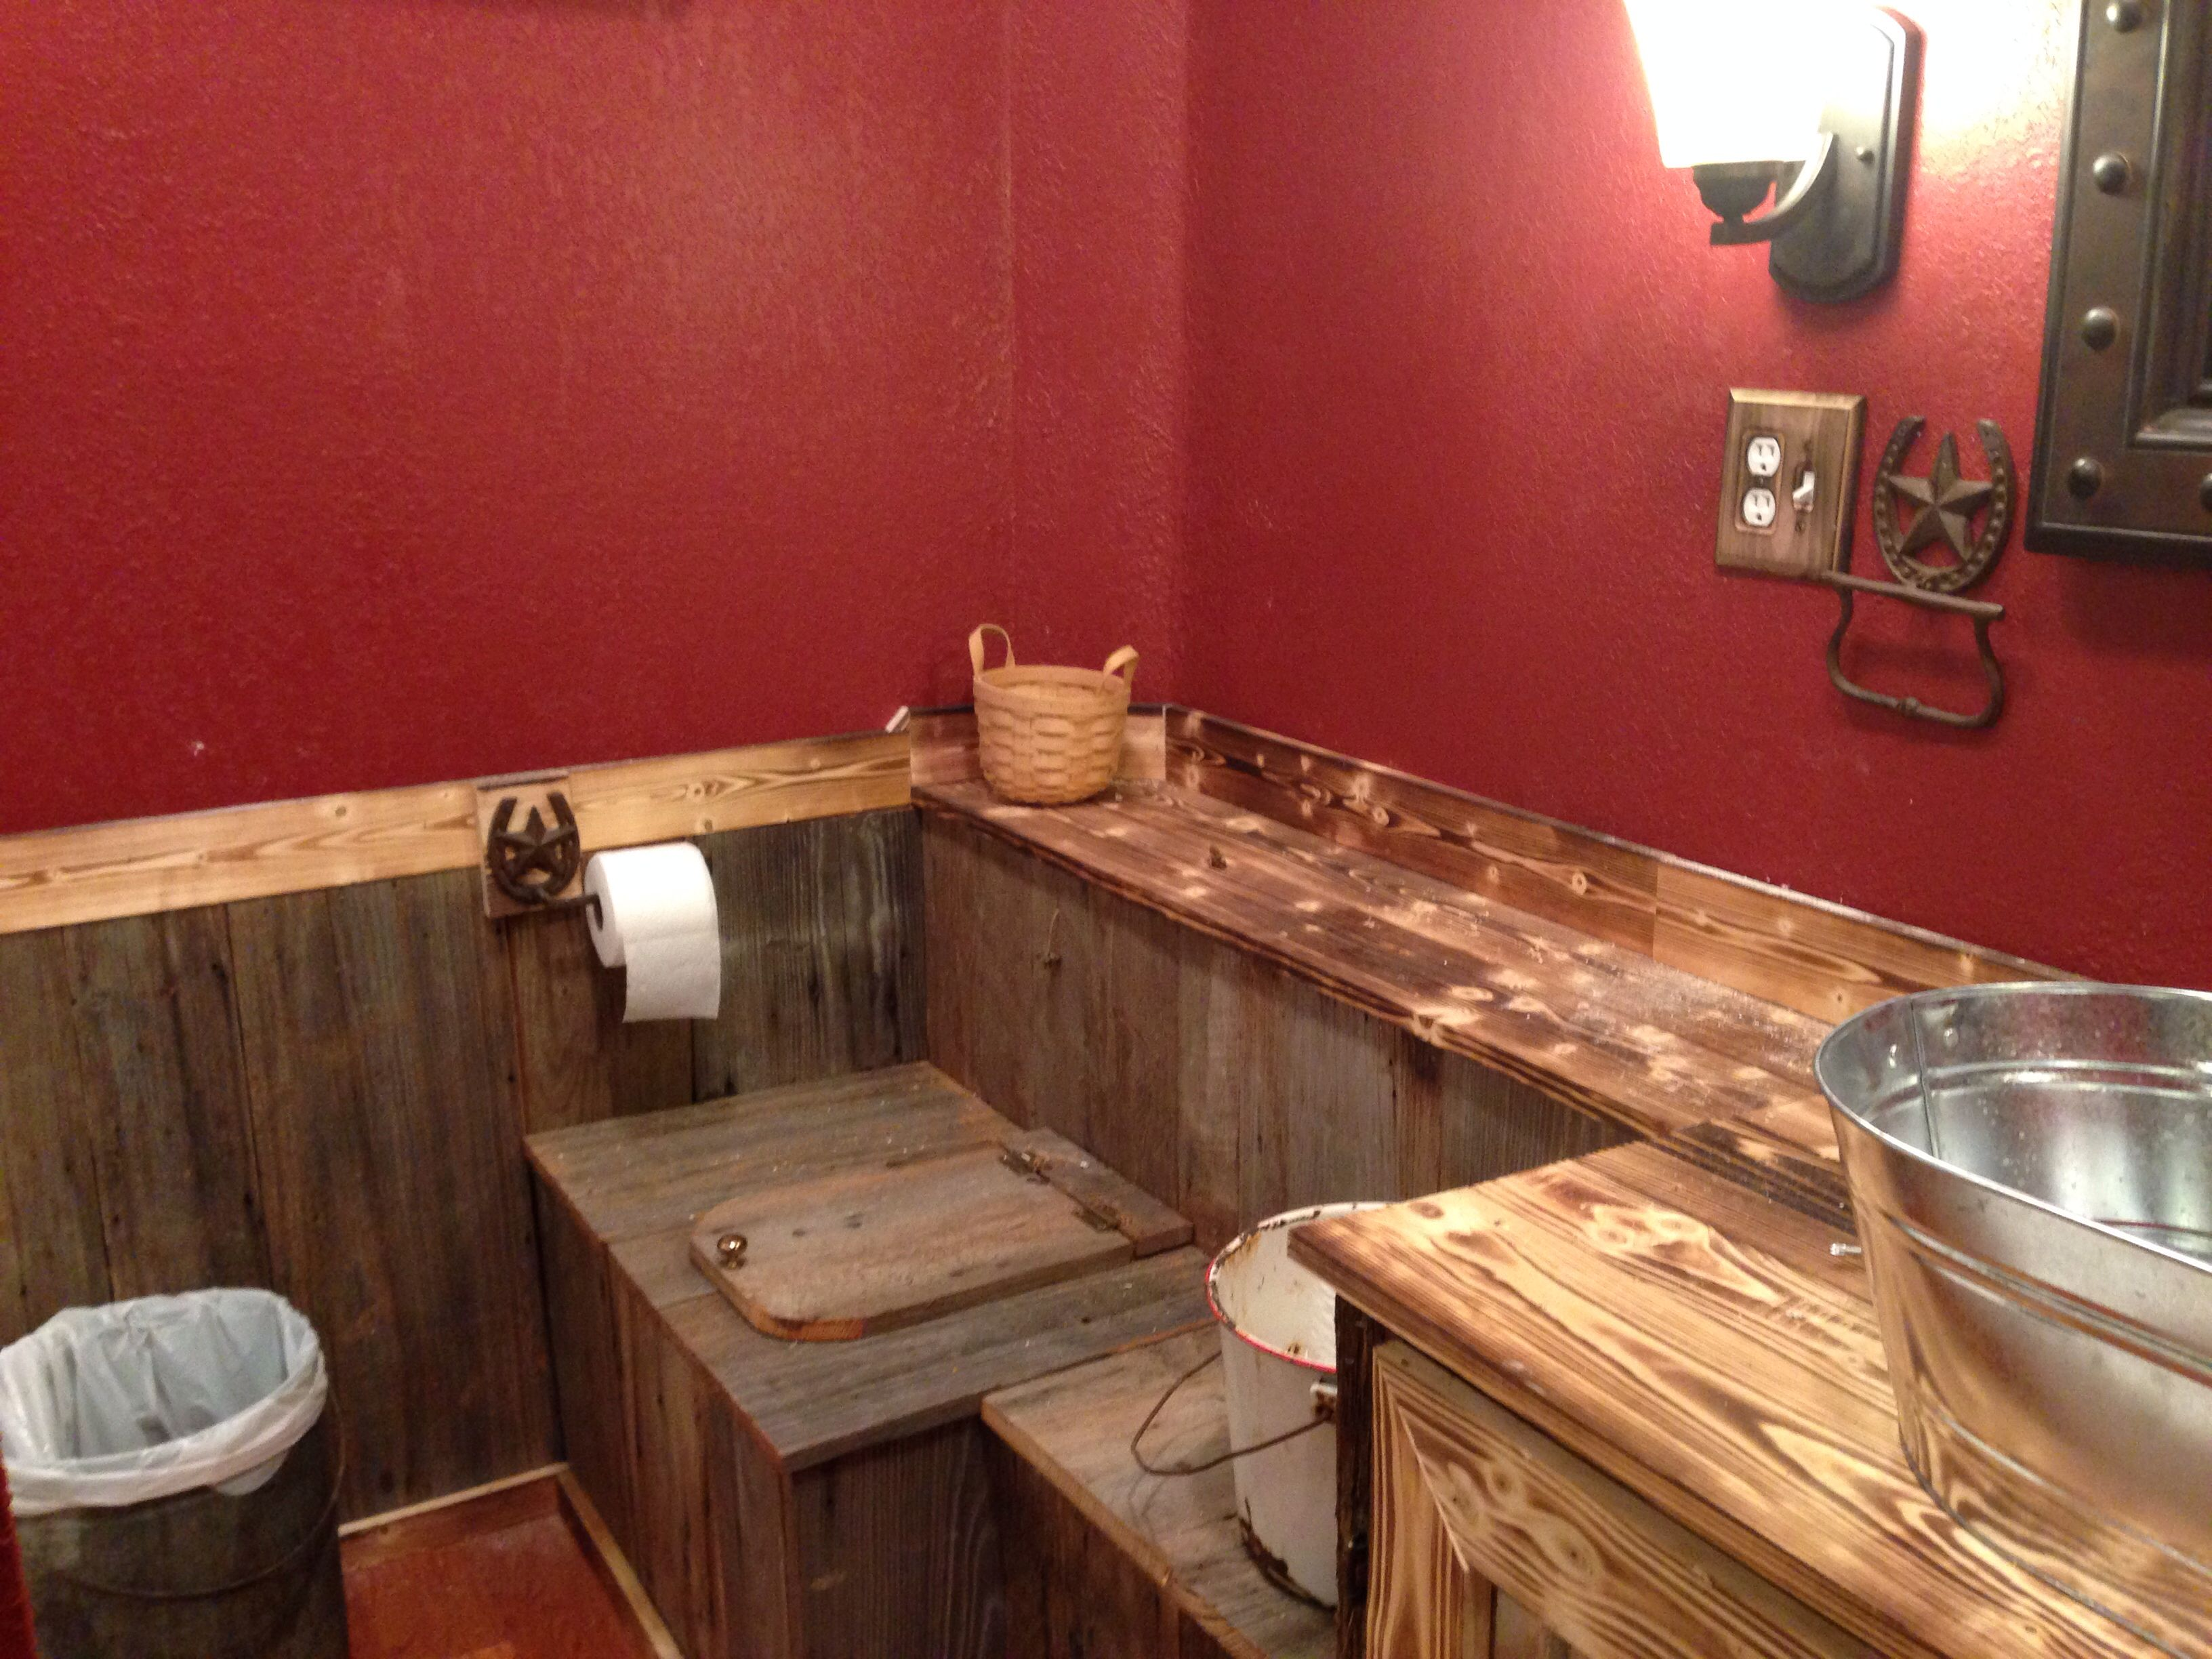 Lowes Bathroom Paint Our Rustic Bathroom The Paint Is Cabin Red Valspar From Lowes We